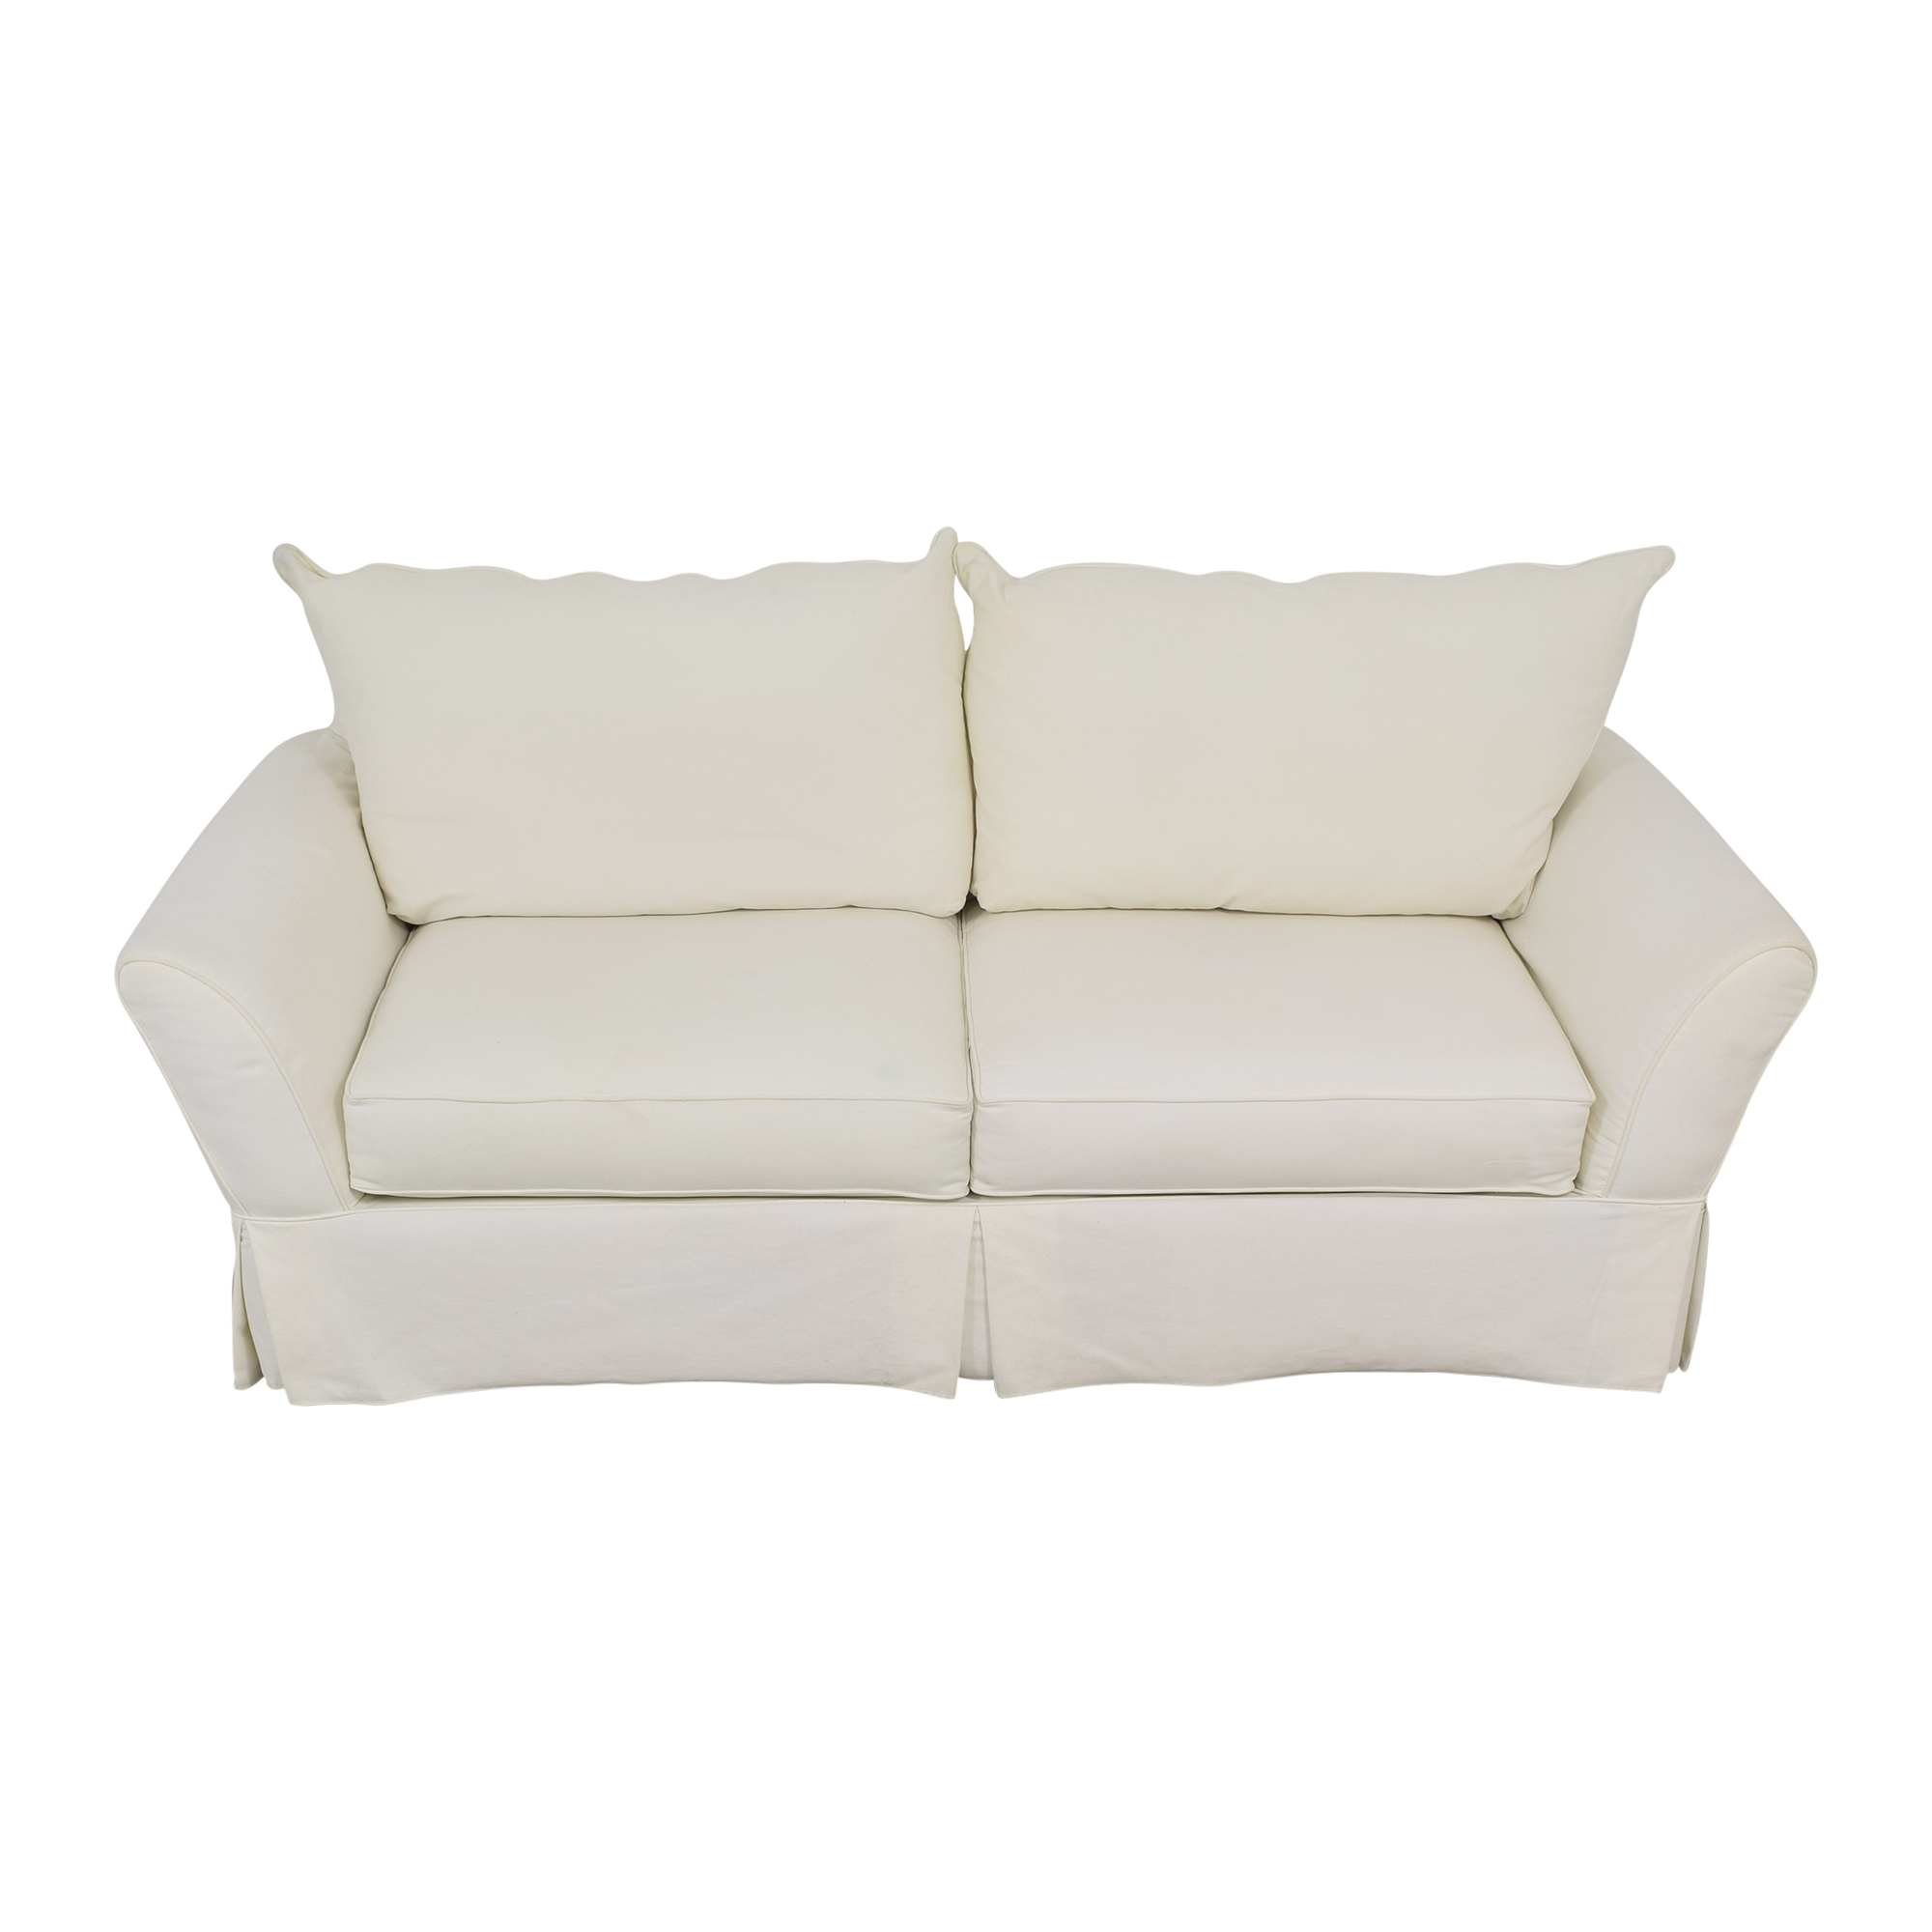 American Signature American Signature Two Cushion Sofa for sale